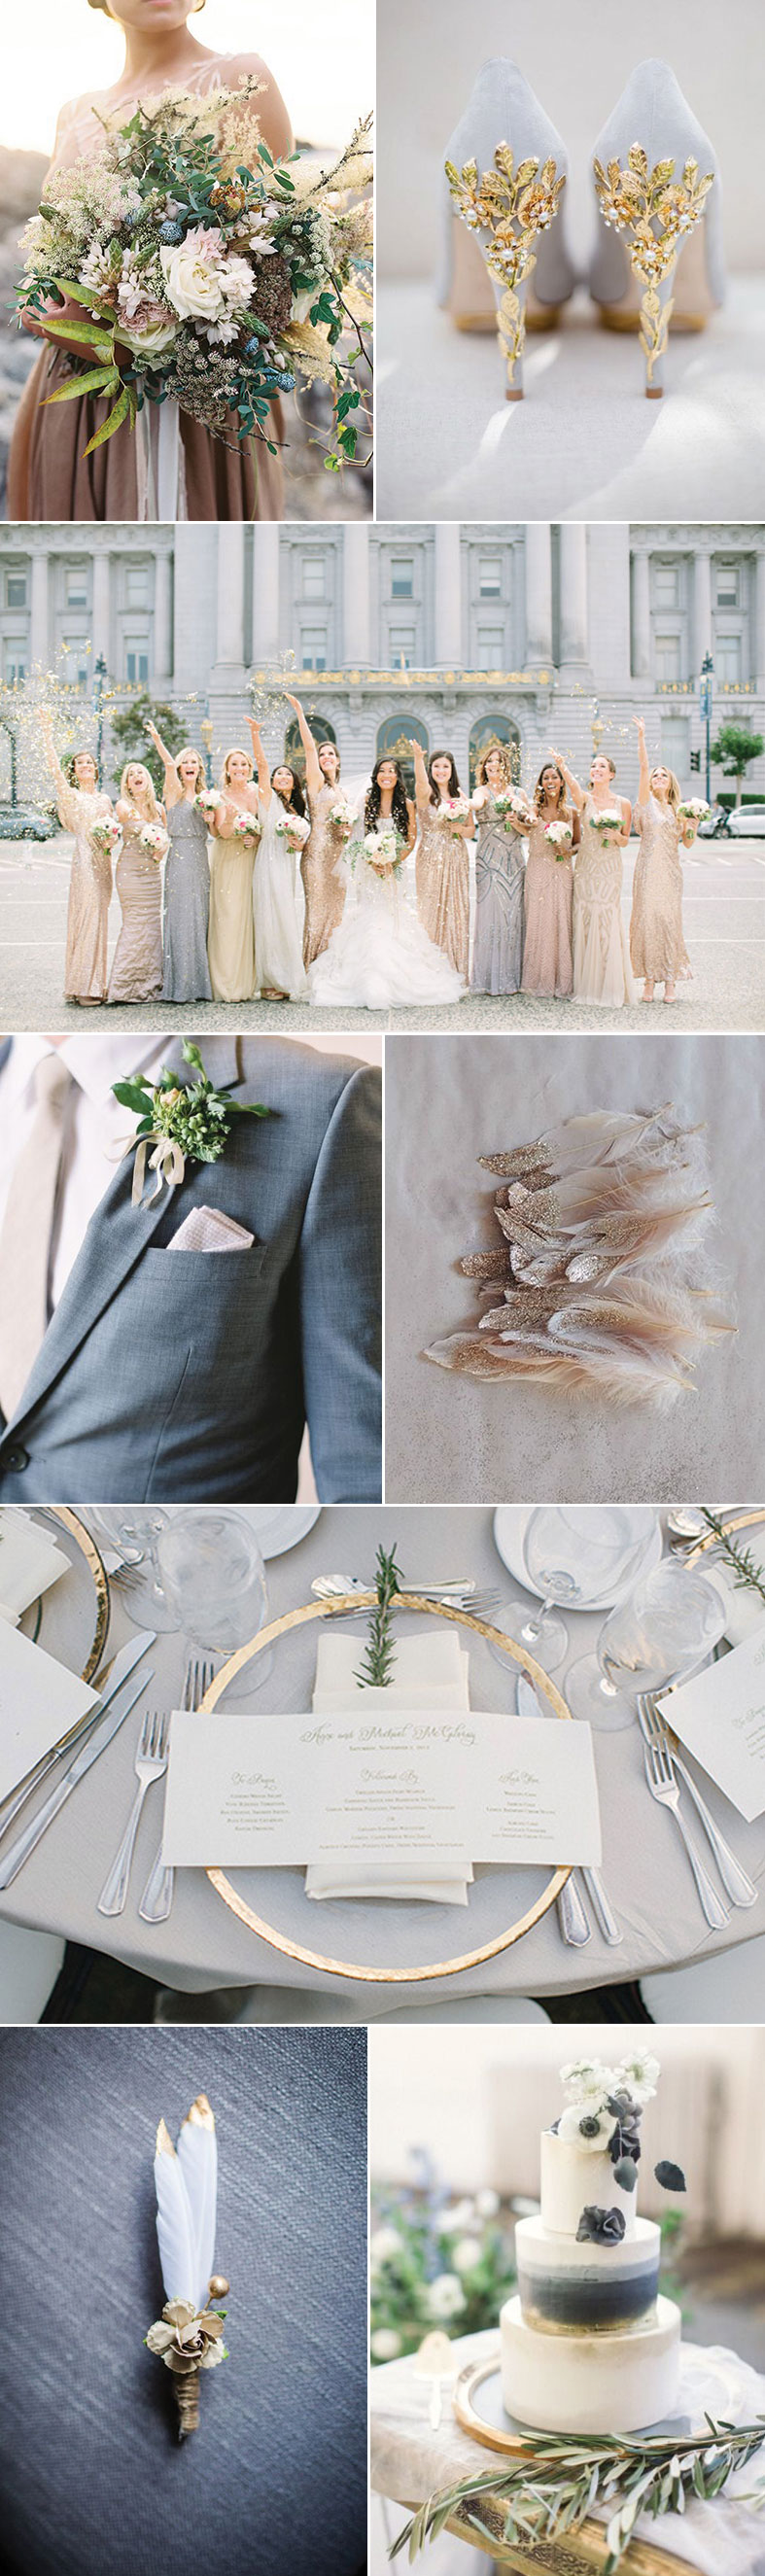 Gray-and-Gold-Wedding-